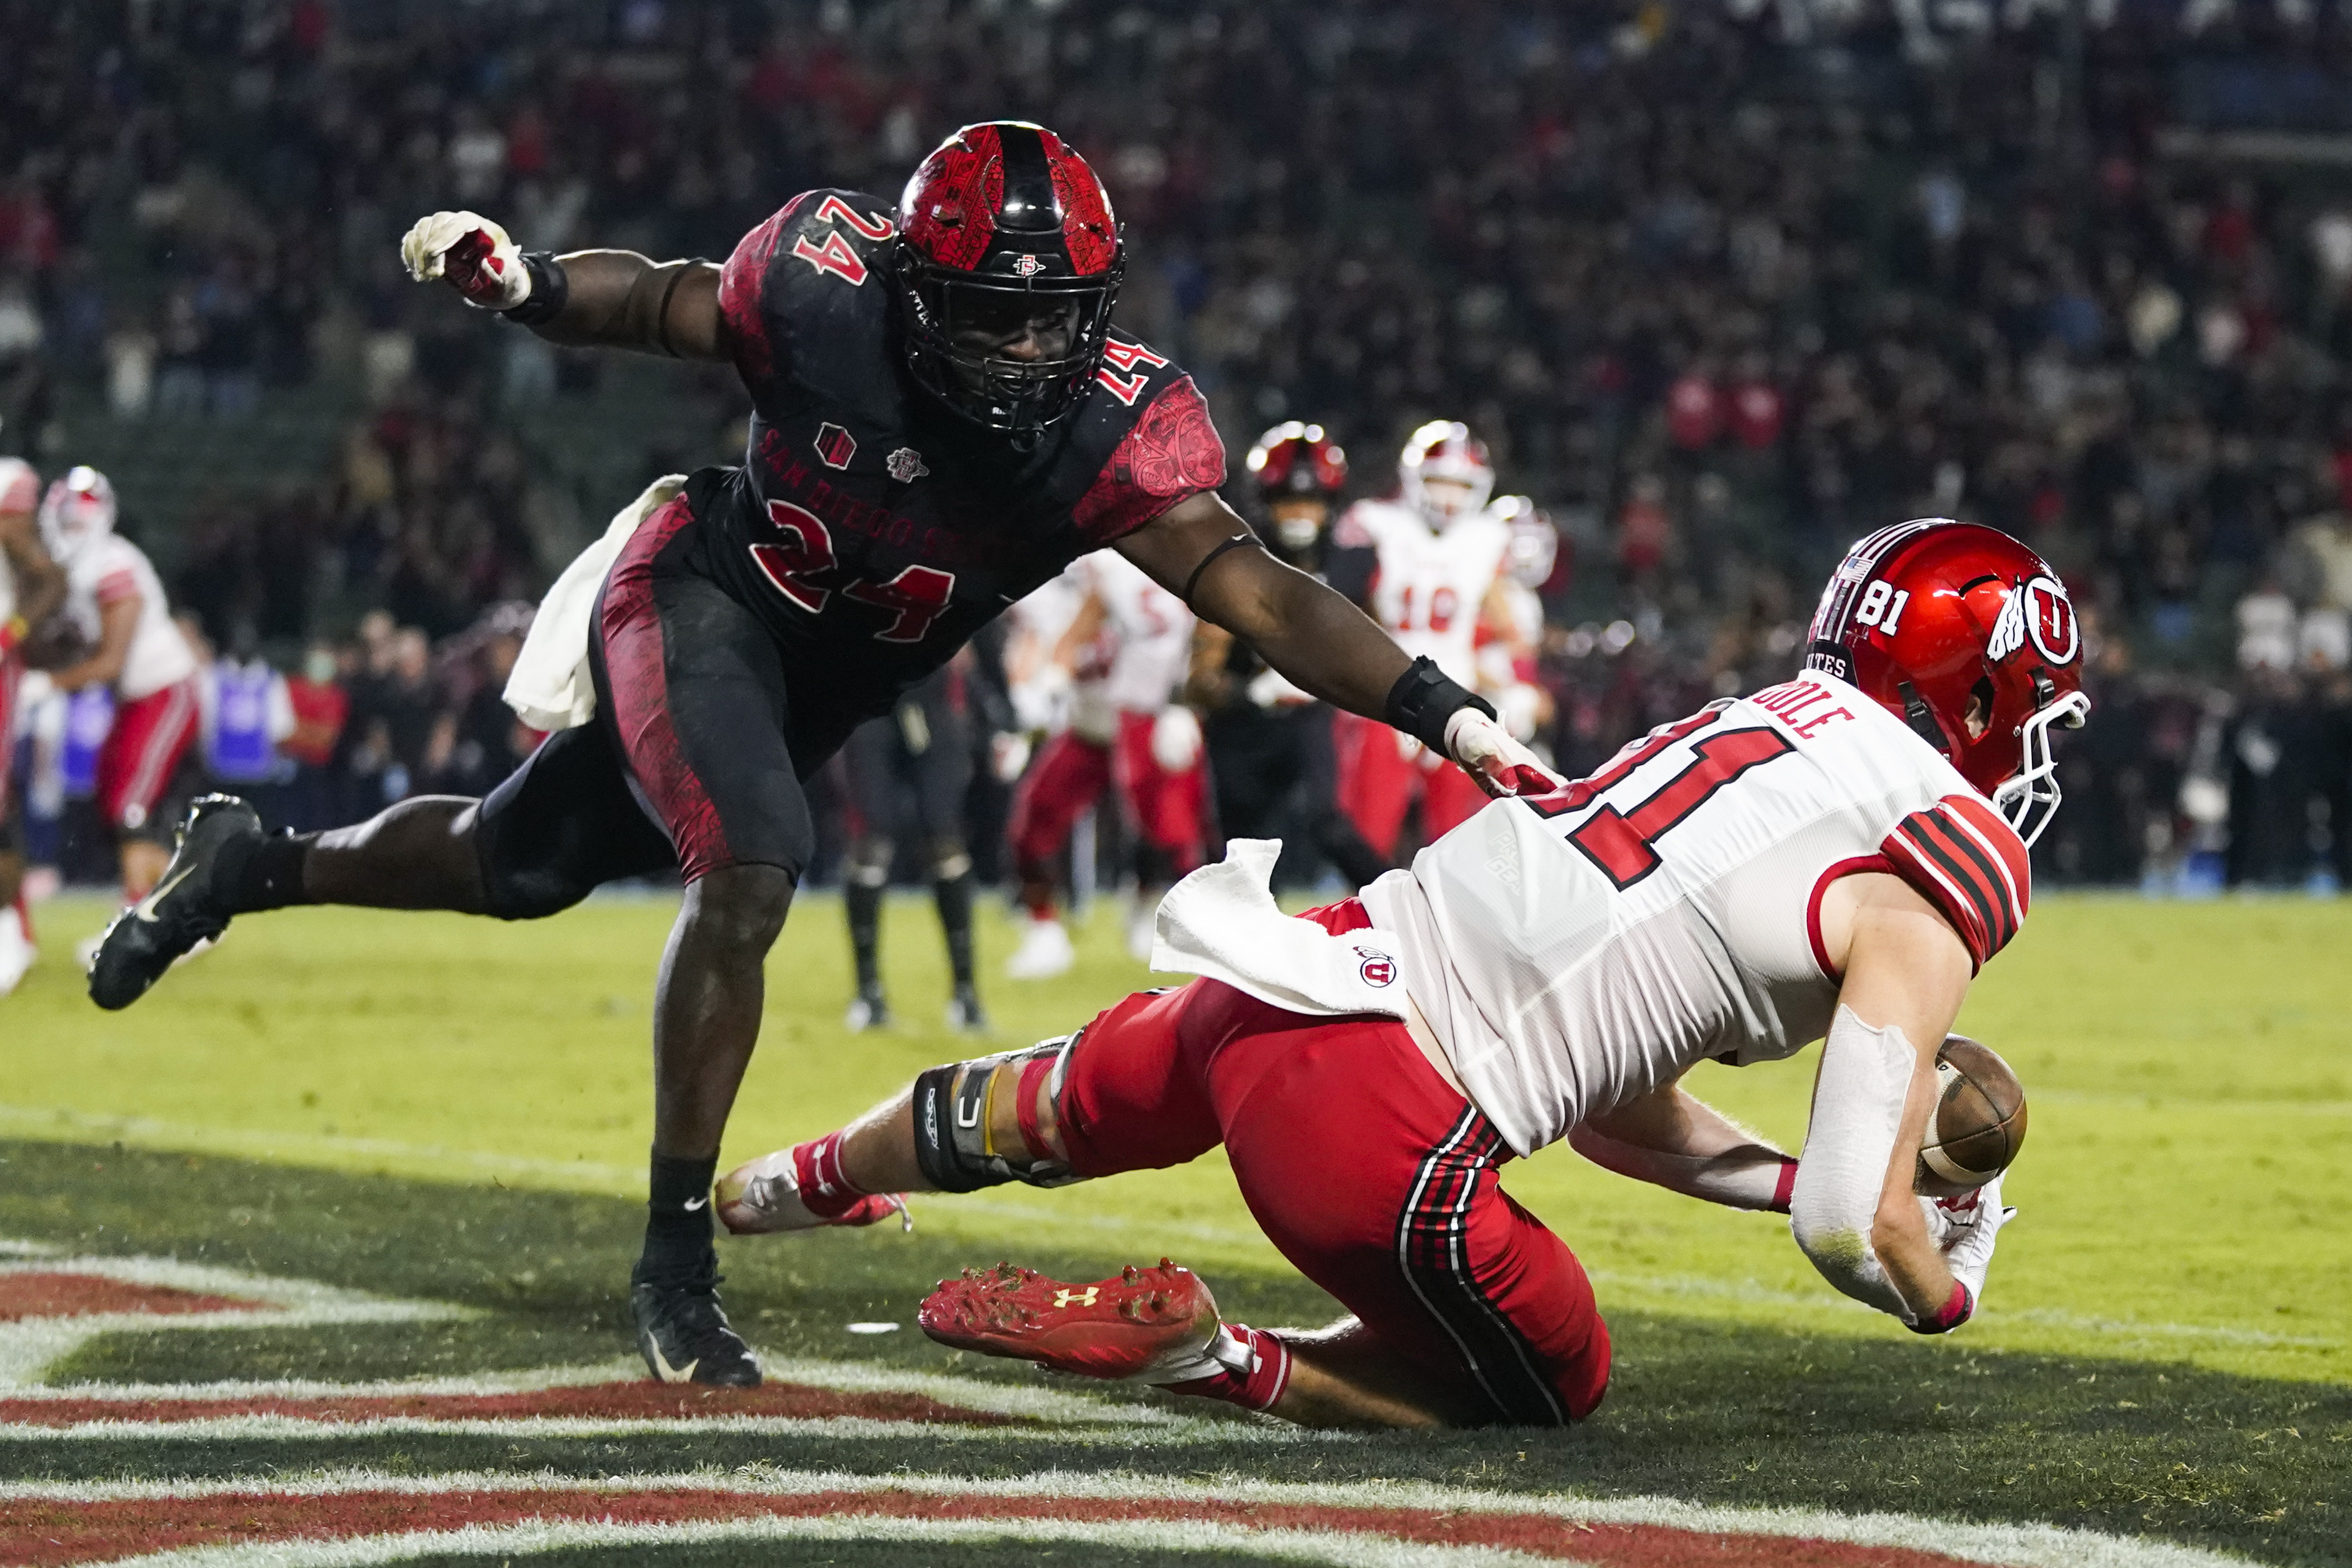 Utah wide receiver Connor O'Toole tries to catch a pass in the end zone ahead of San Diego State linebacker Segun Olubi.